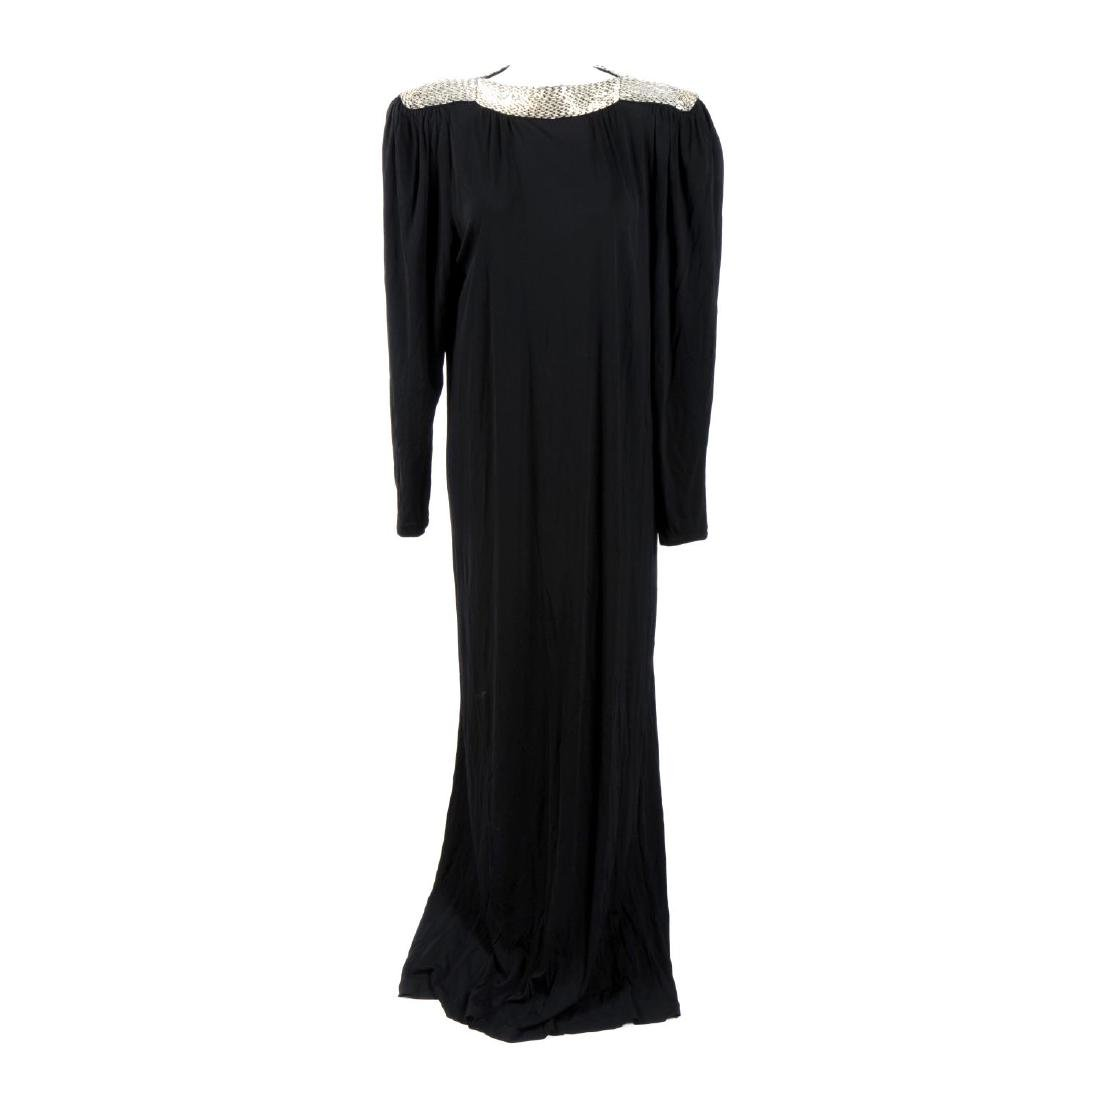 BRUCE OLDFIELD - a dress. The full-length black viscose